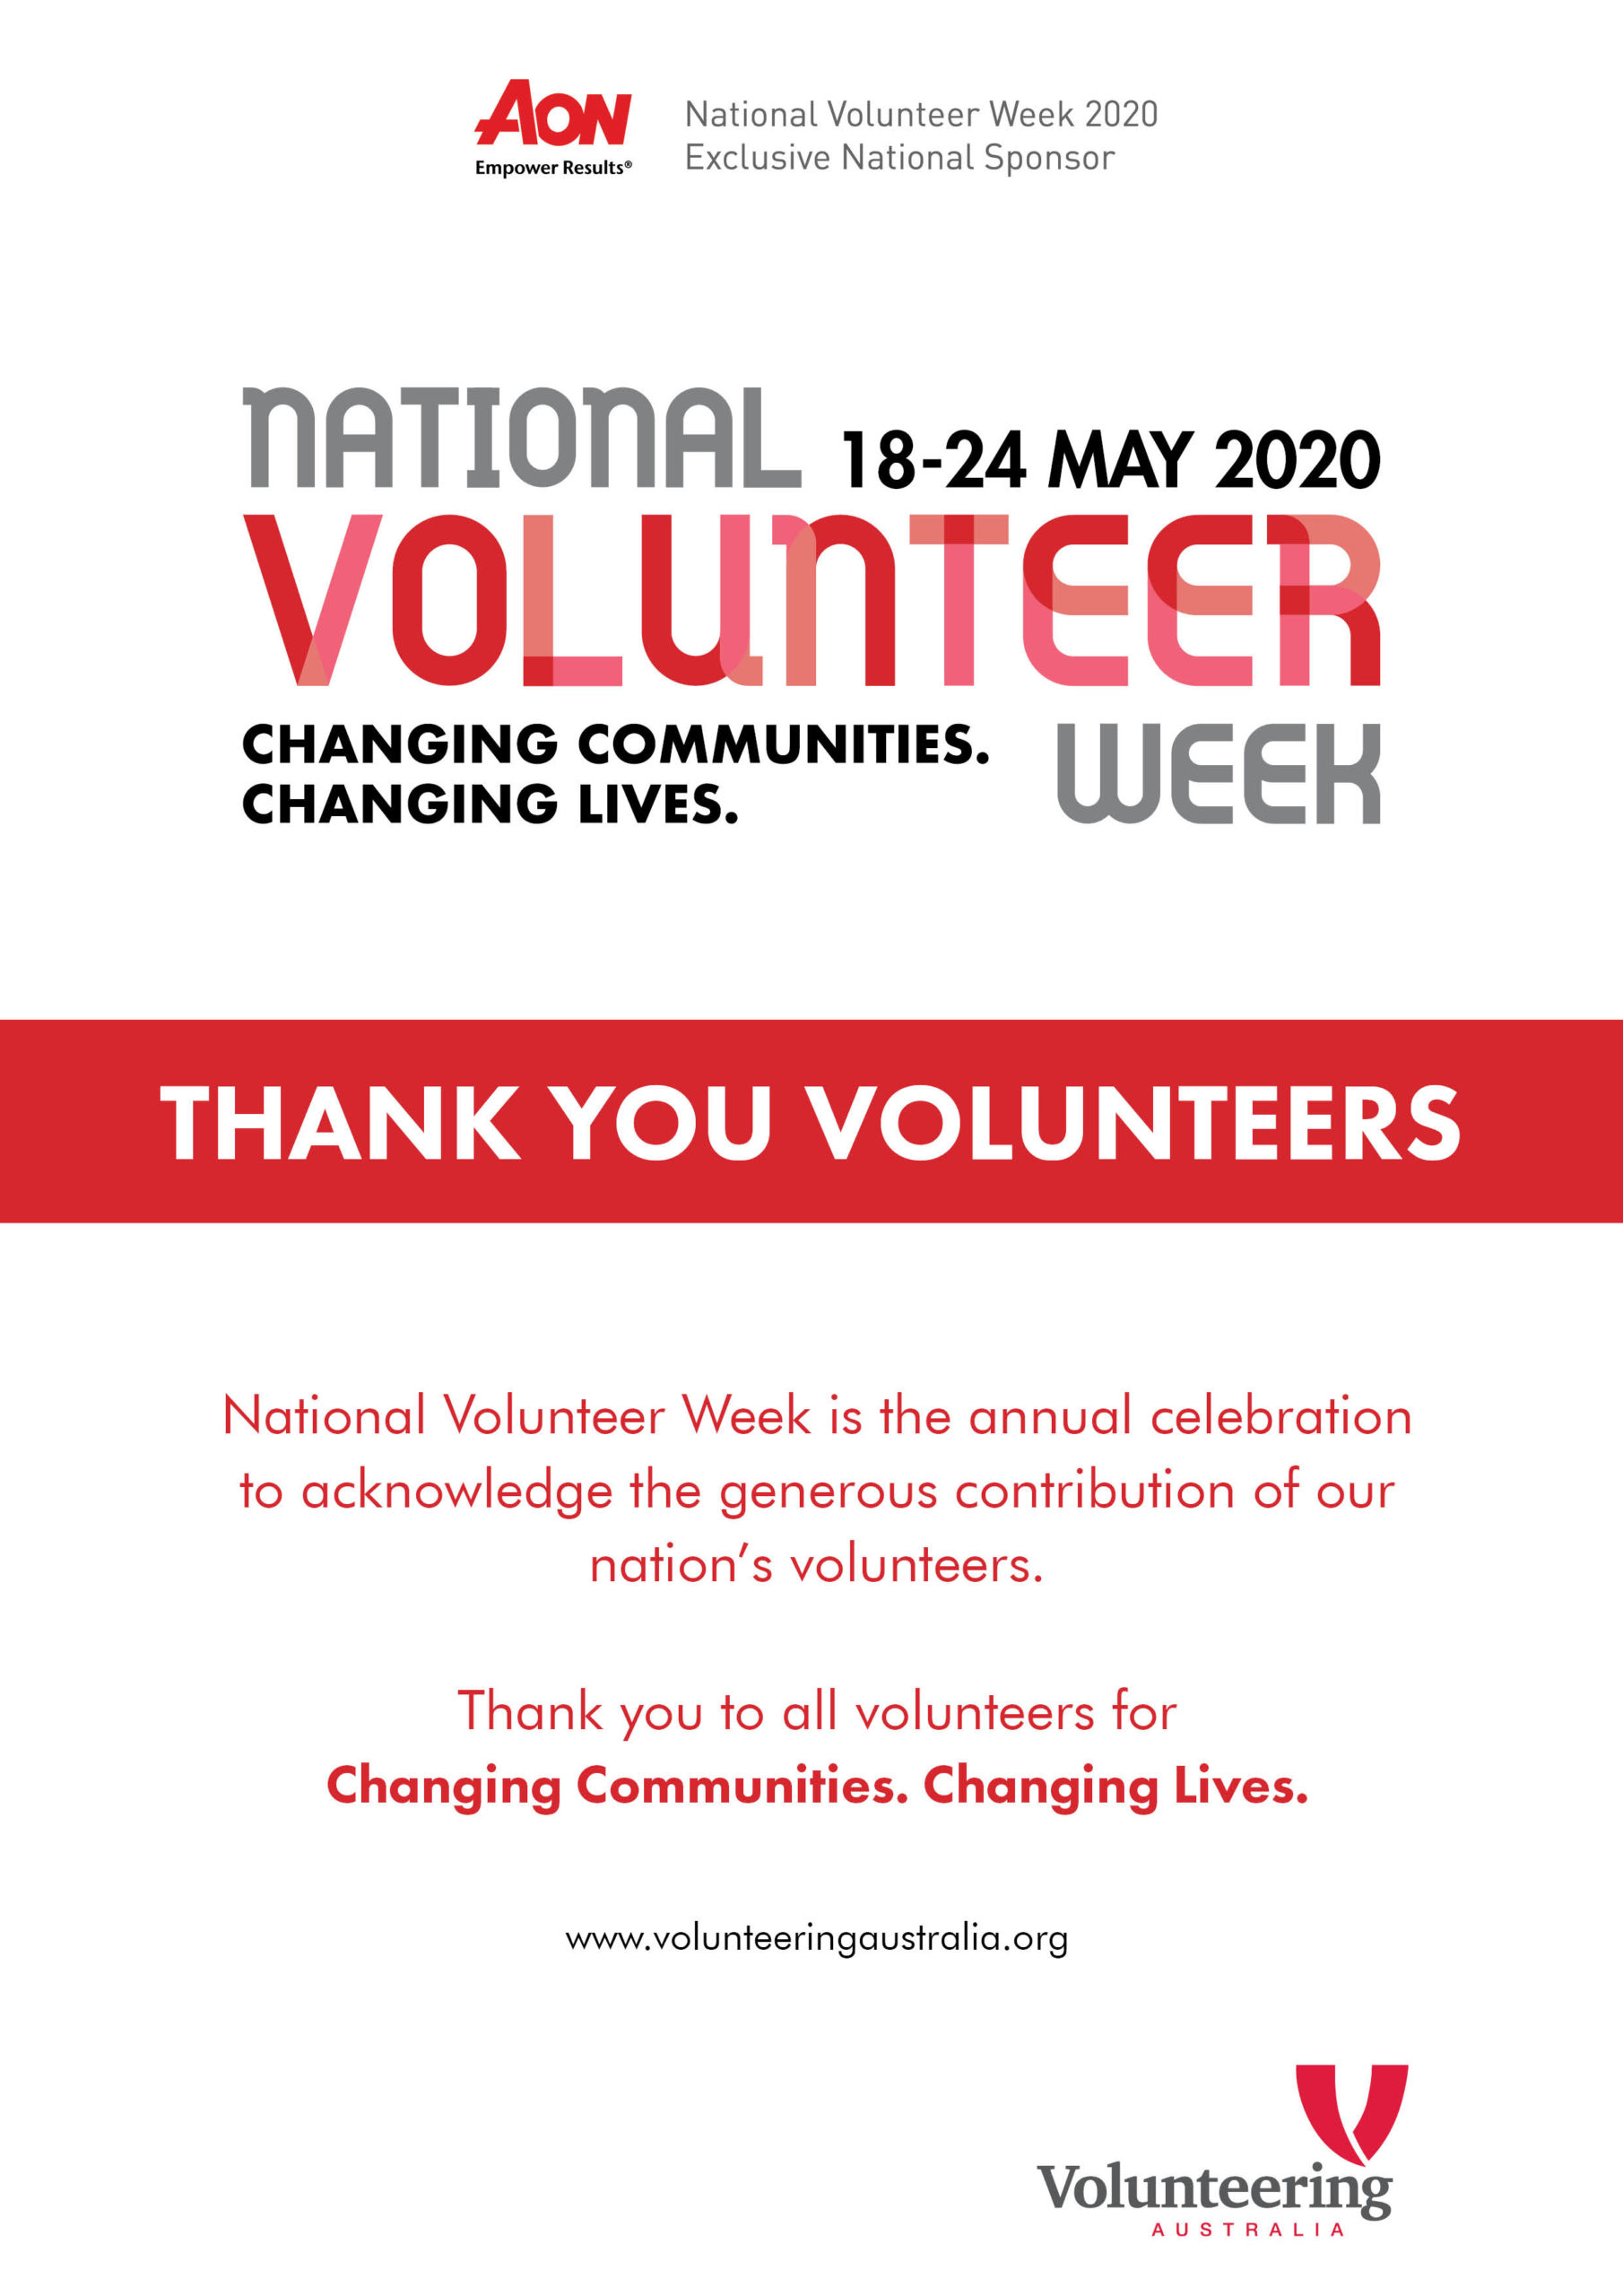 National Volunteer Week Resources